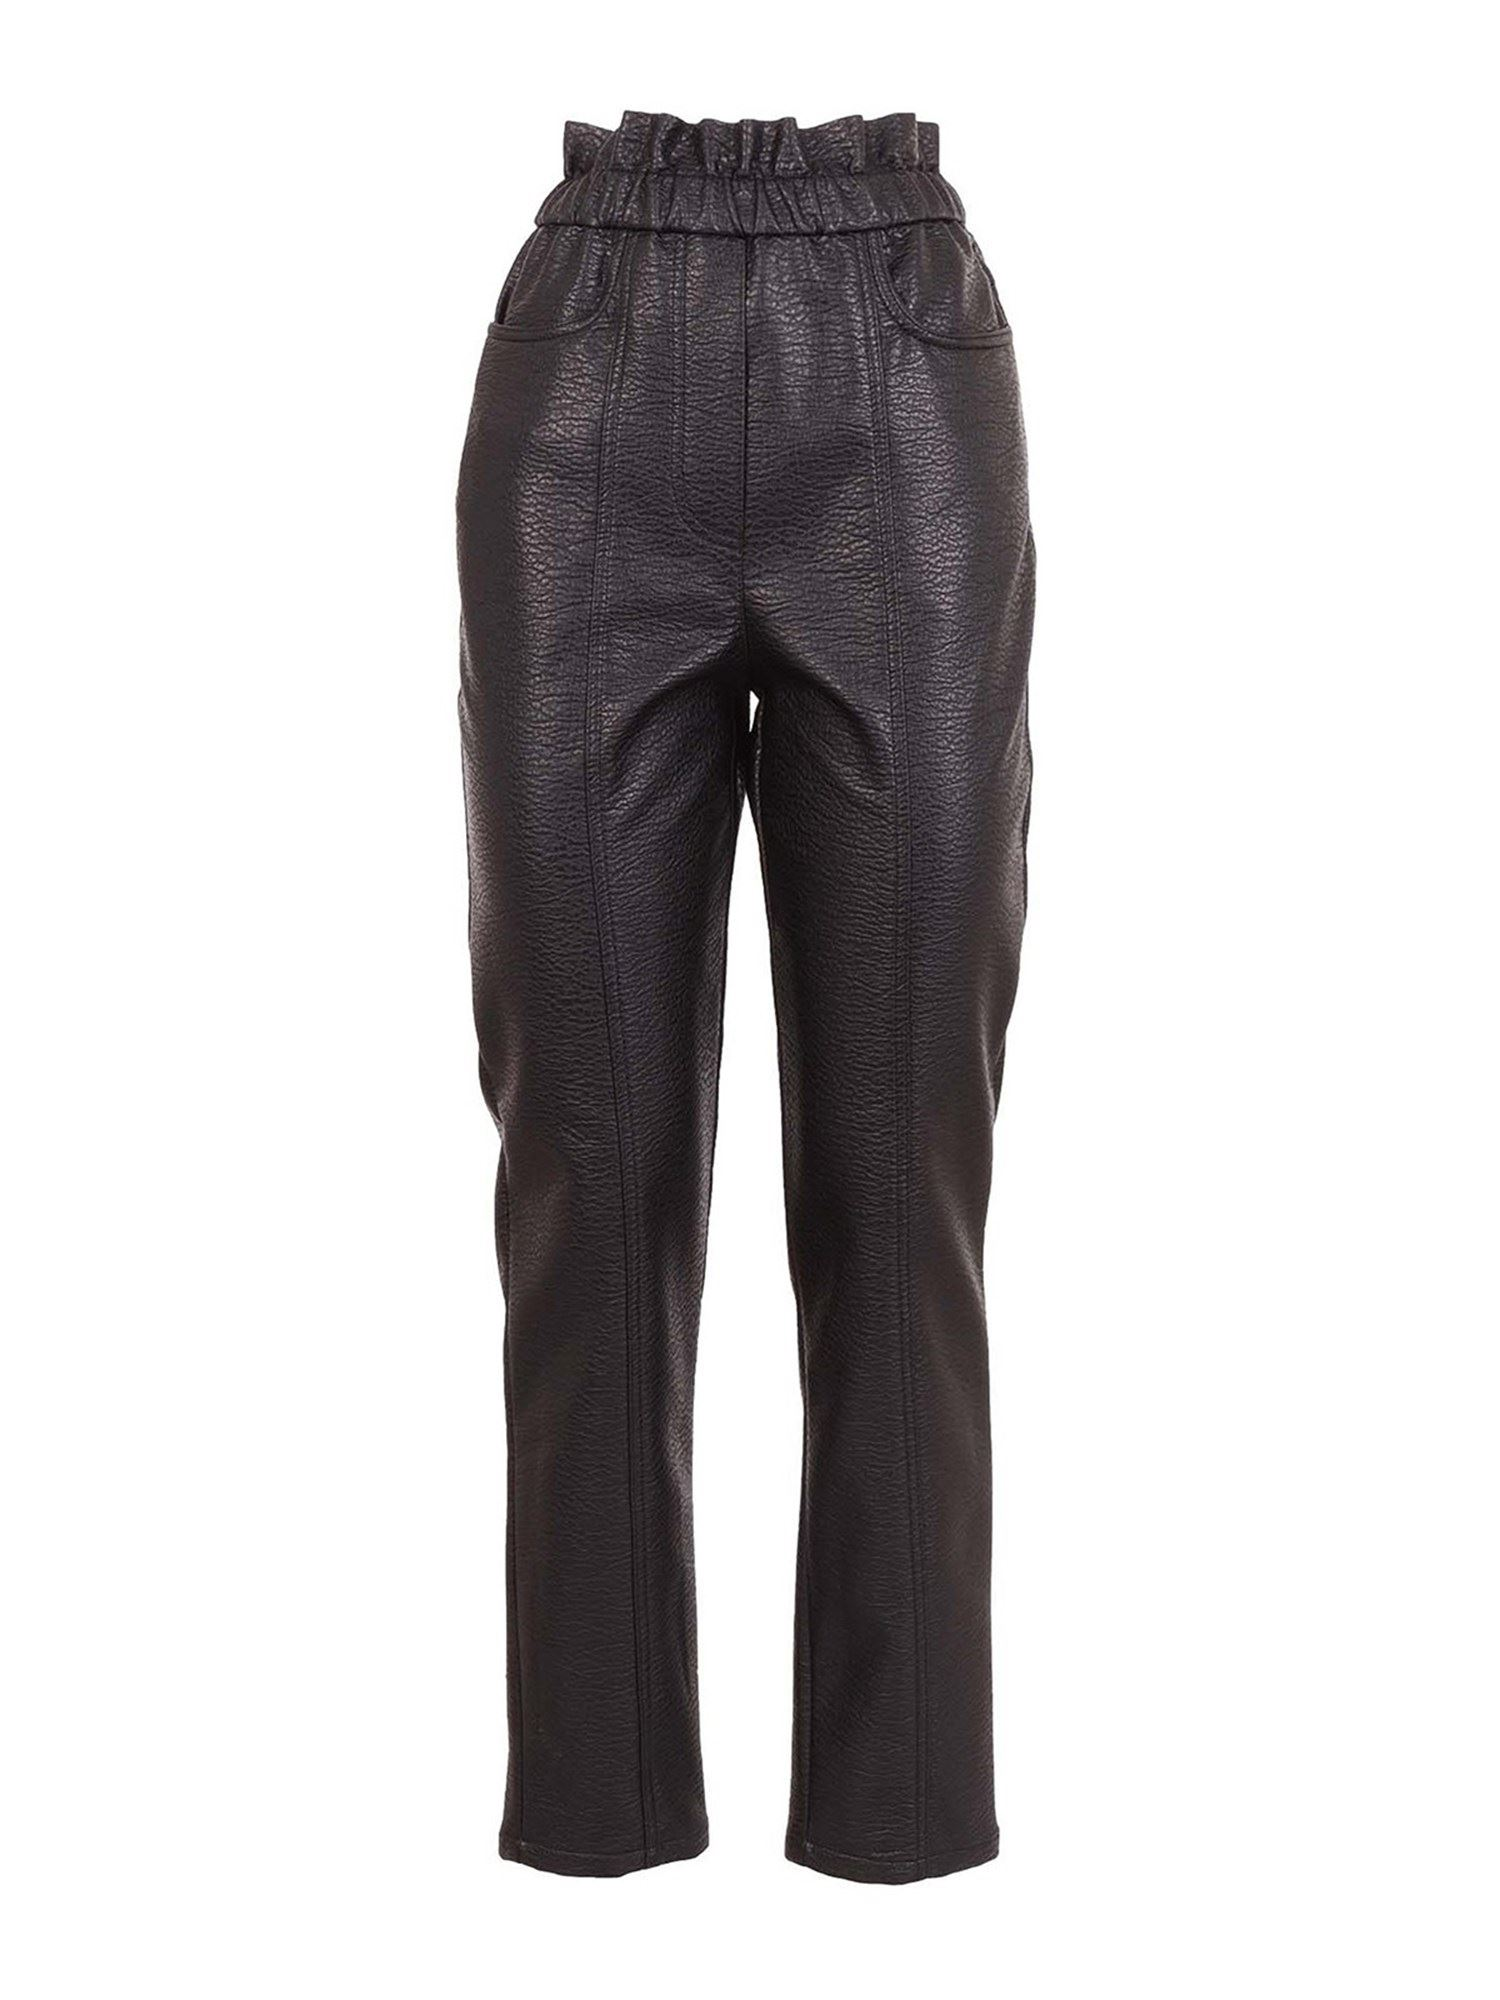 PHILOSOPHY DI LORENZO SERAFINI FAUX LEATHER TROUSERS IN BLACK